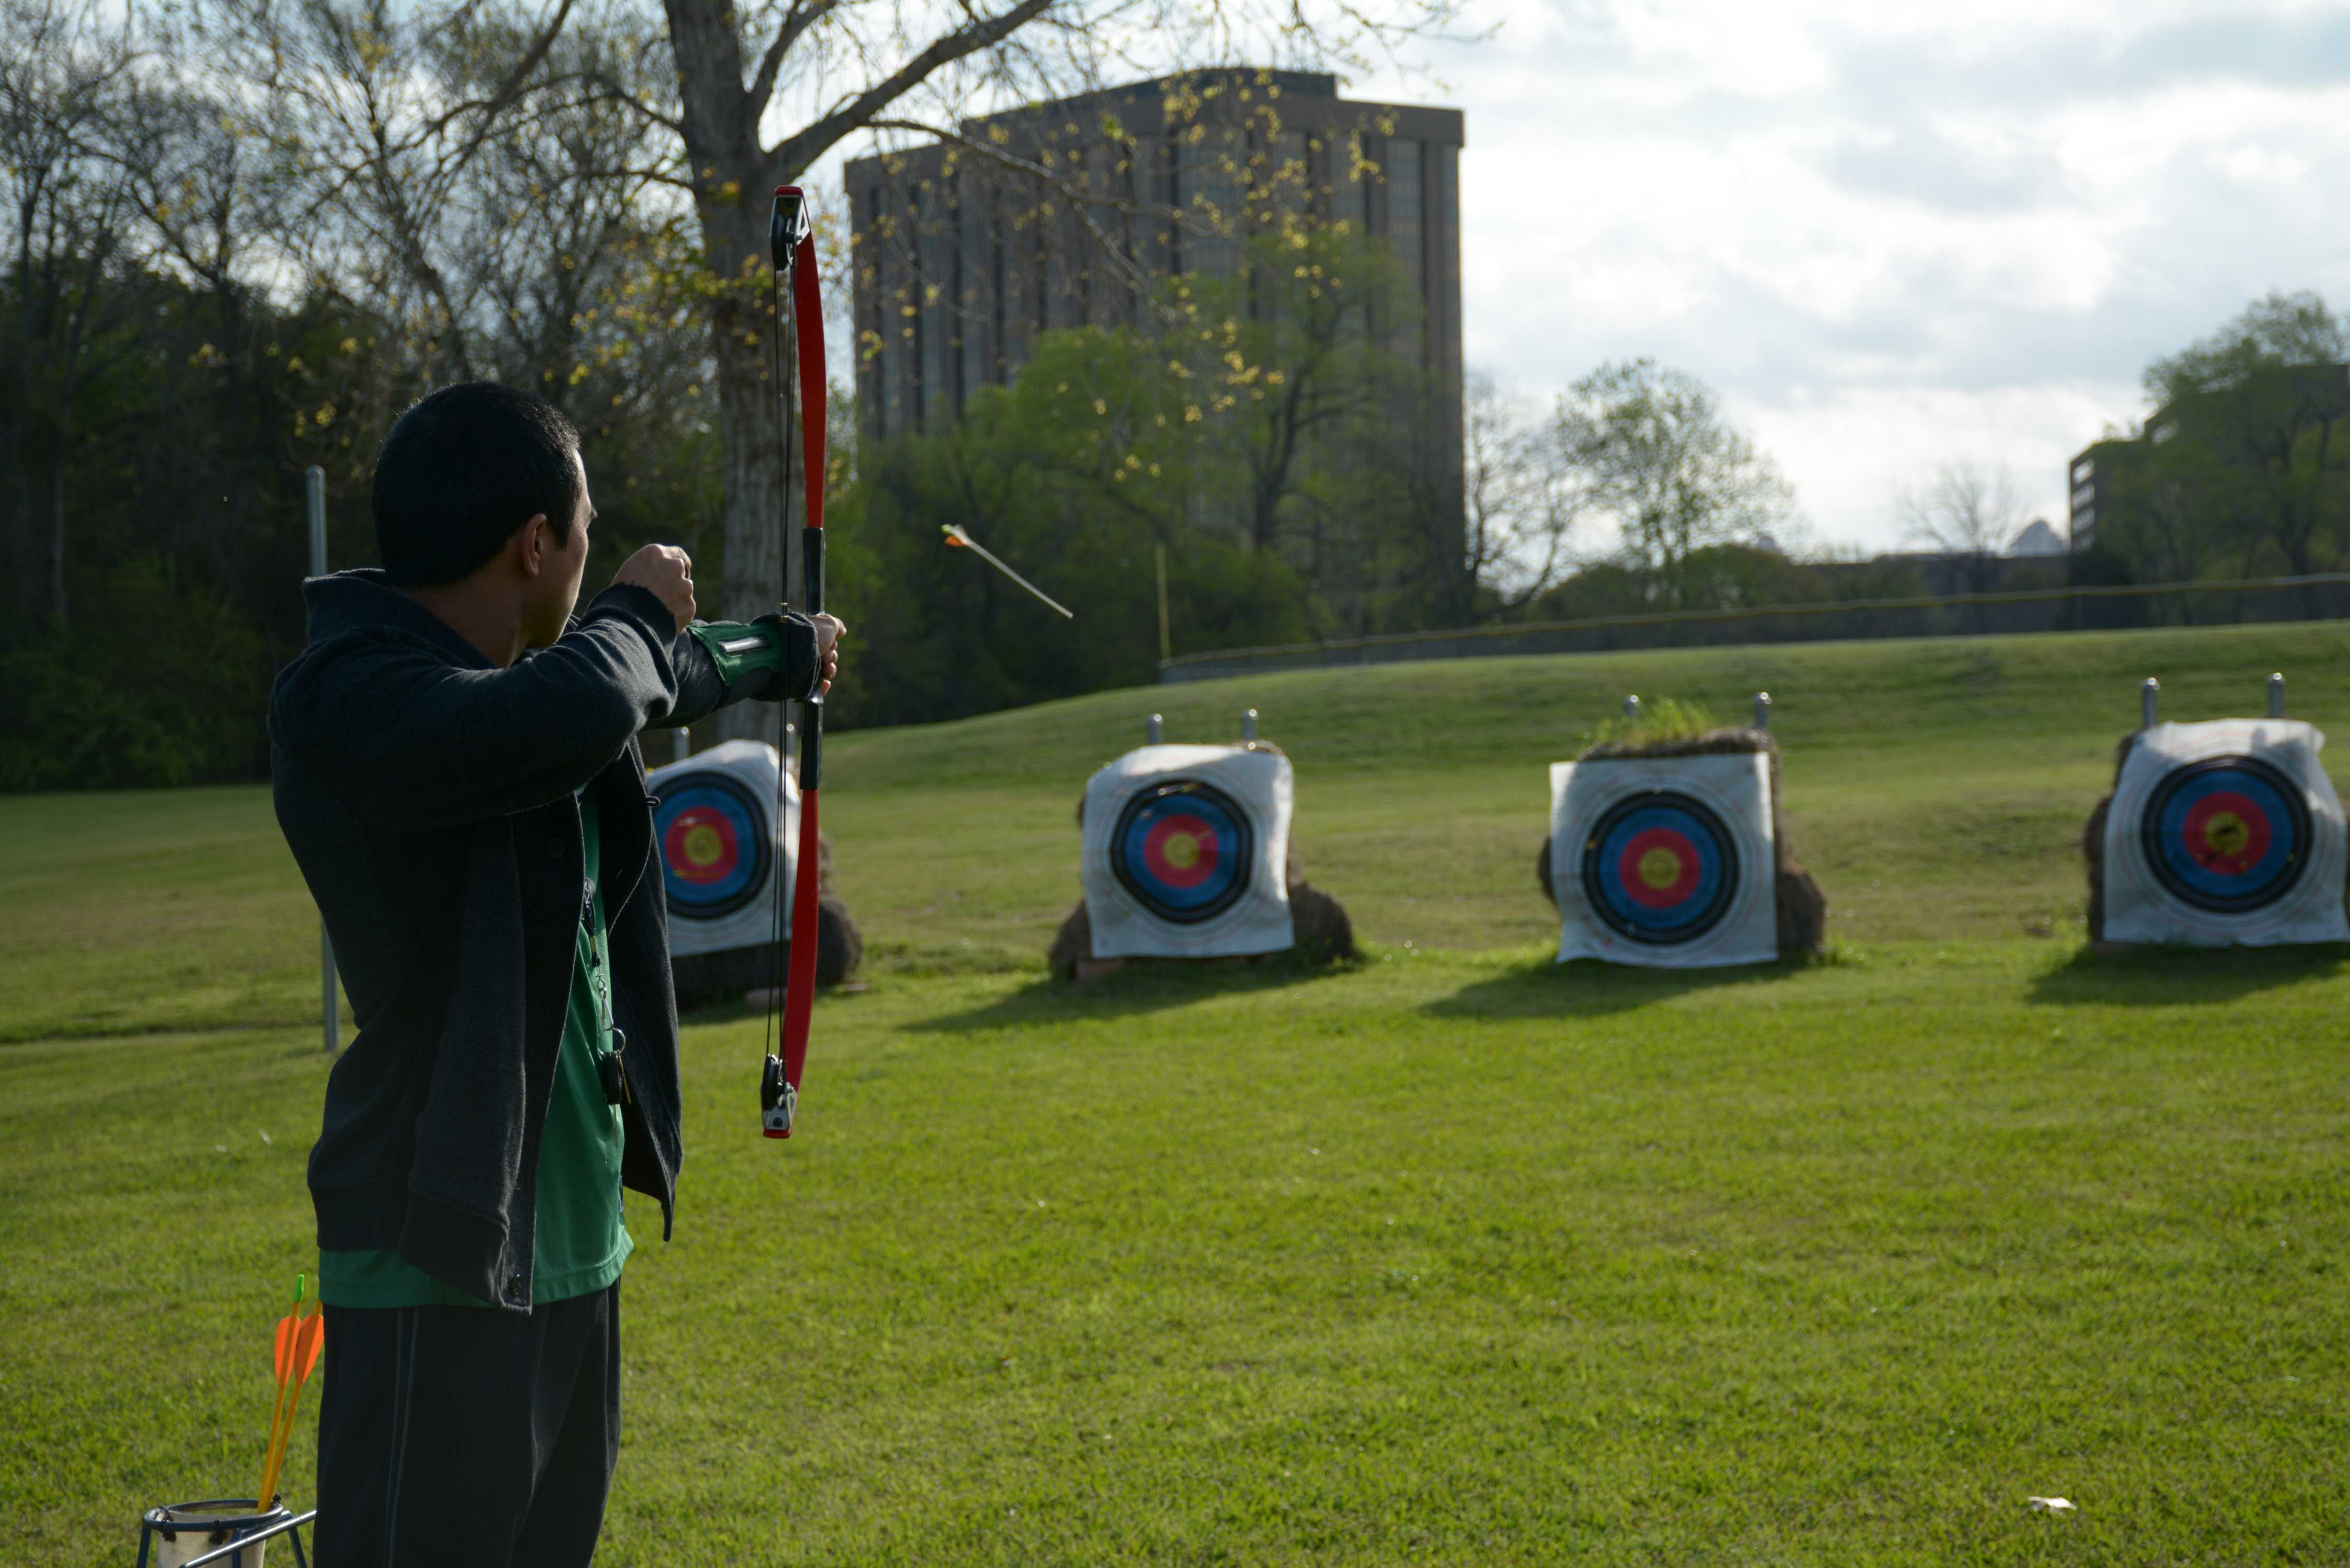 Ribery Kinsella, a student, shoots an arrow with a compound bow